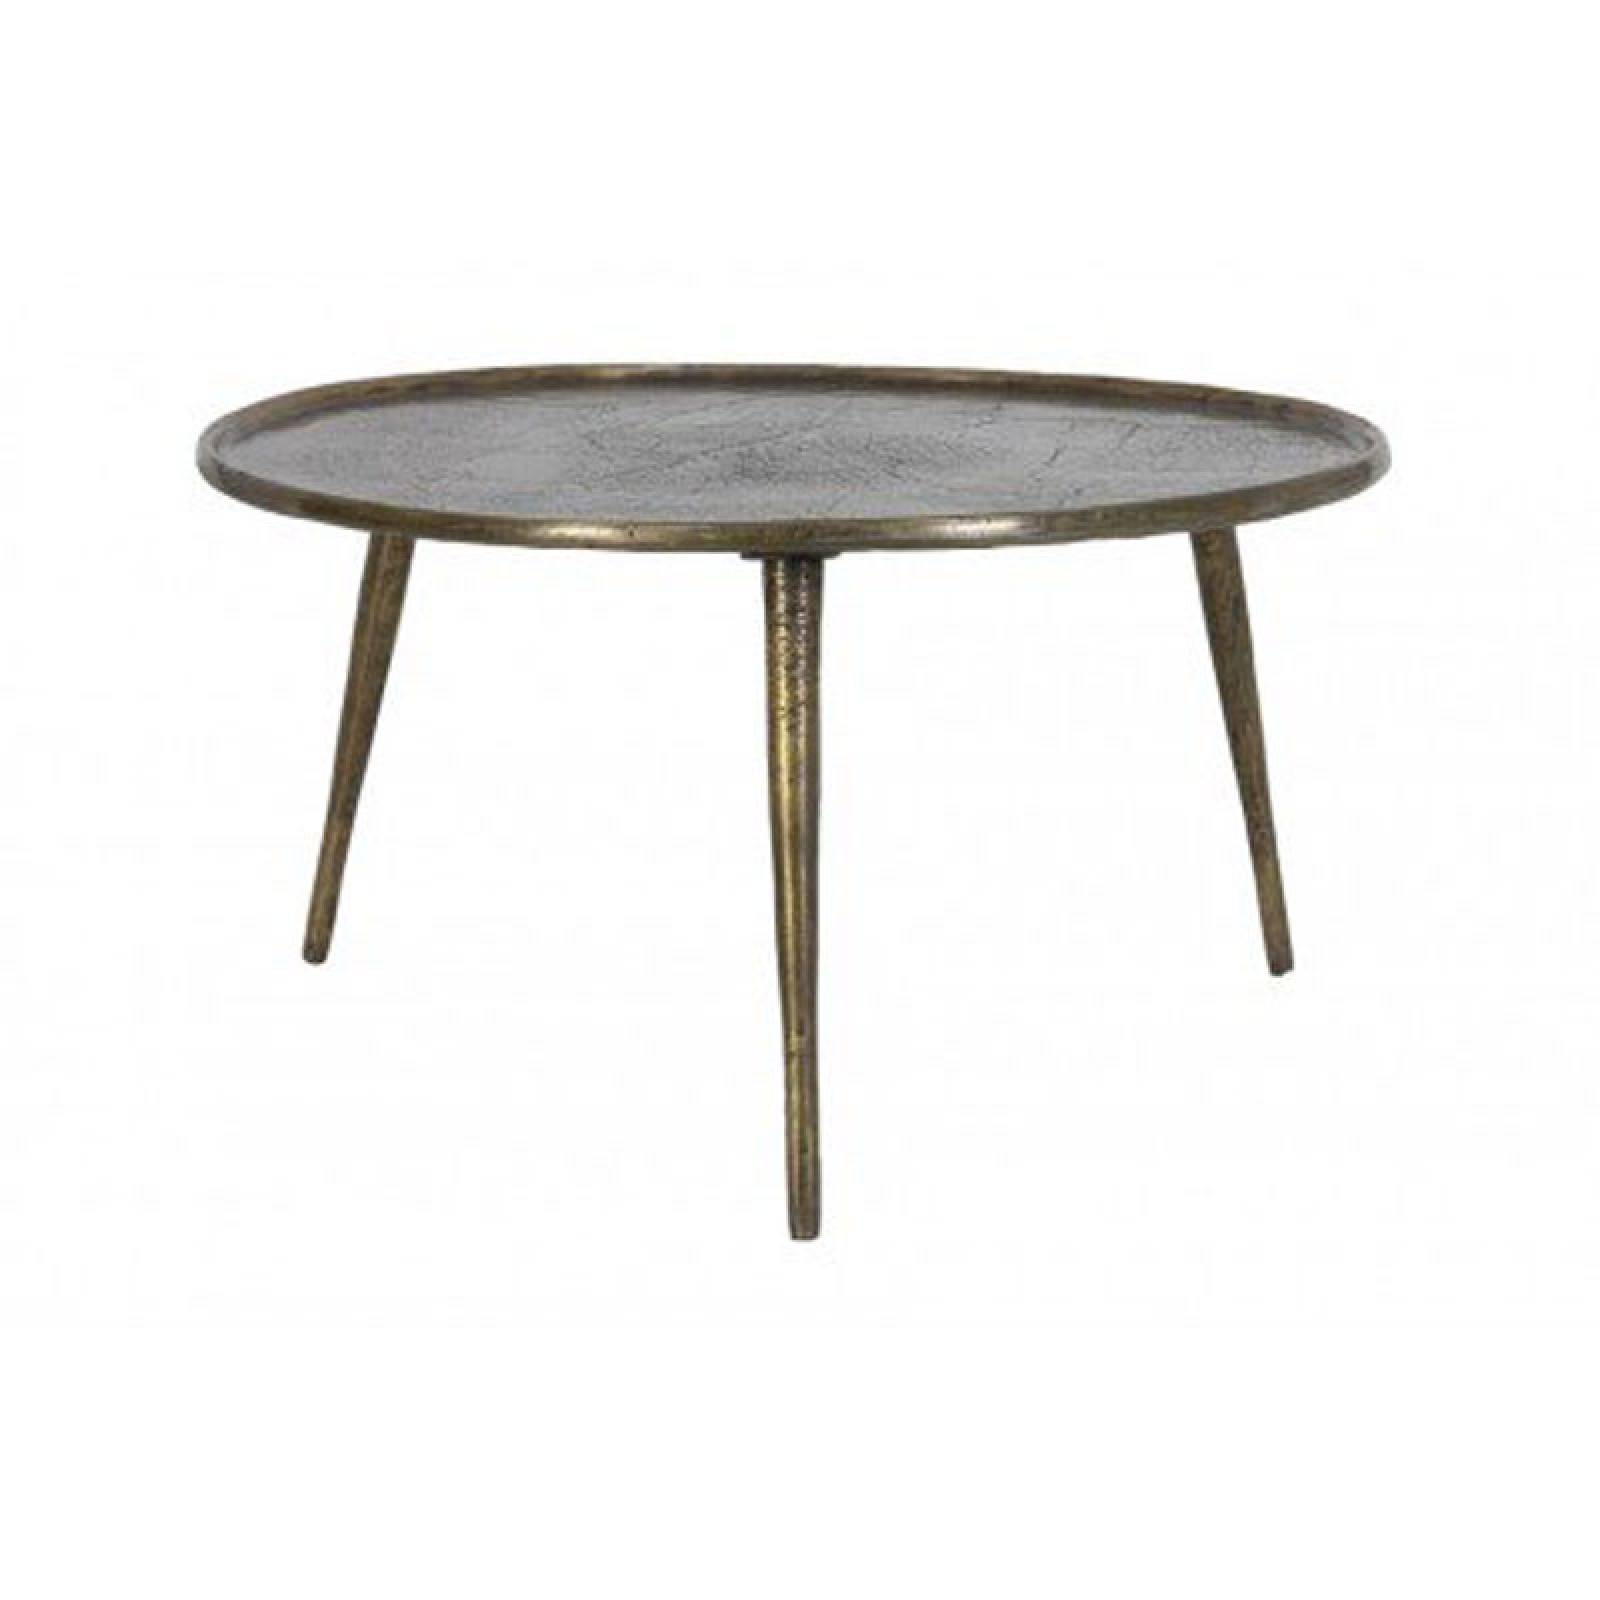 Chak Circular Side Table With Tripod Legs In Bronze 70x40cm